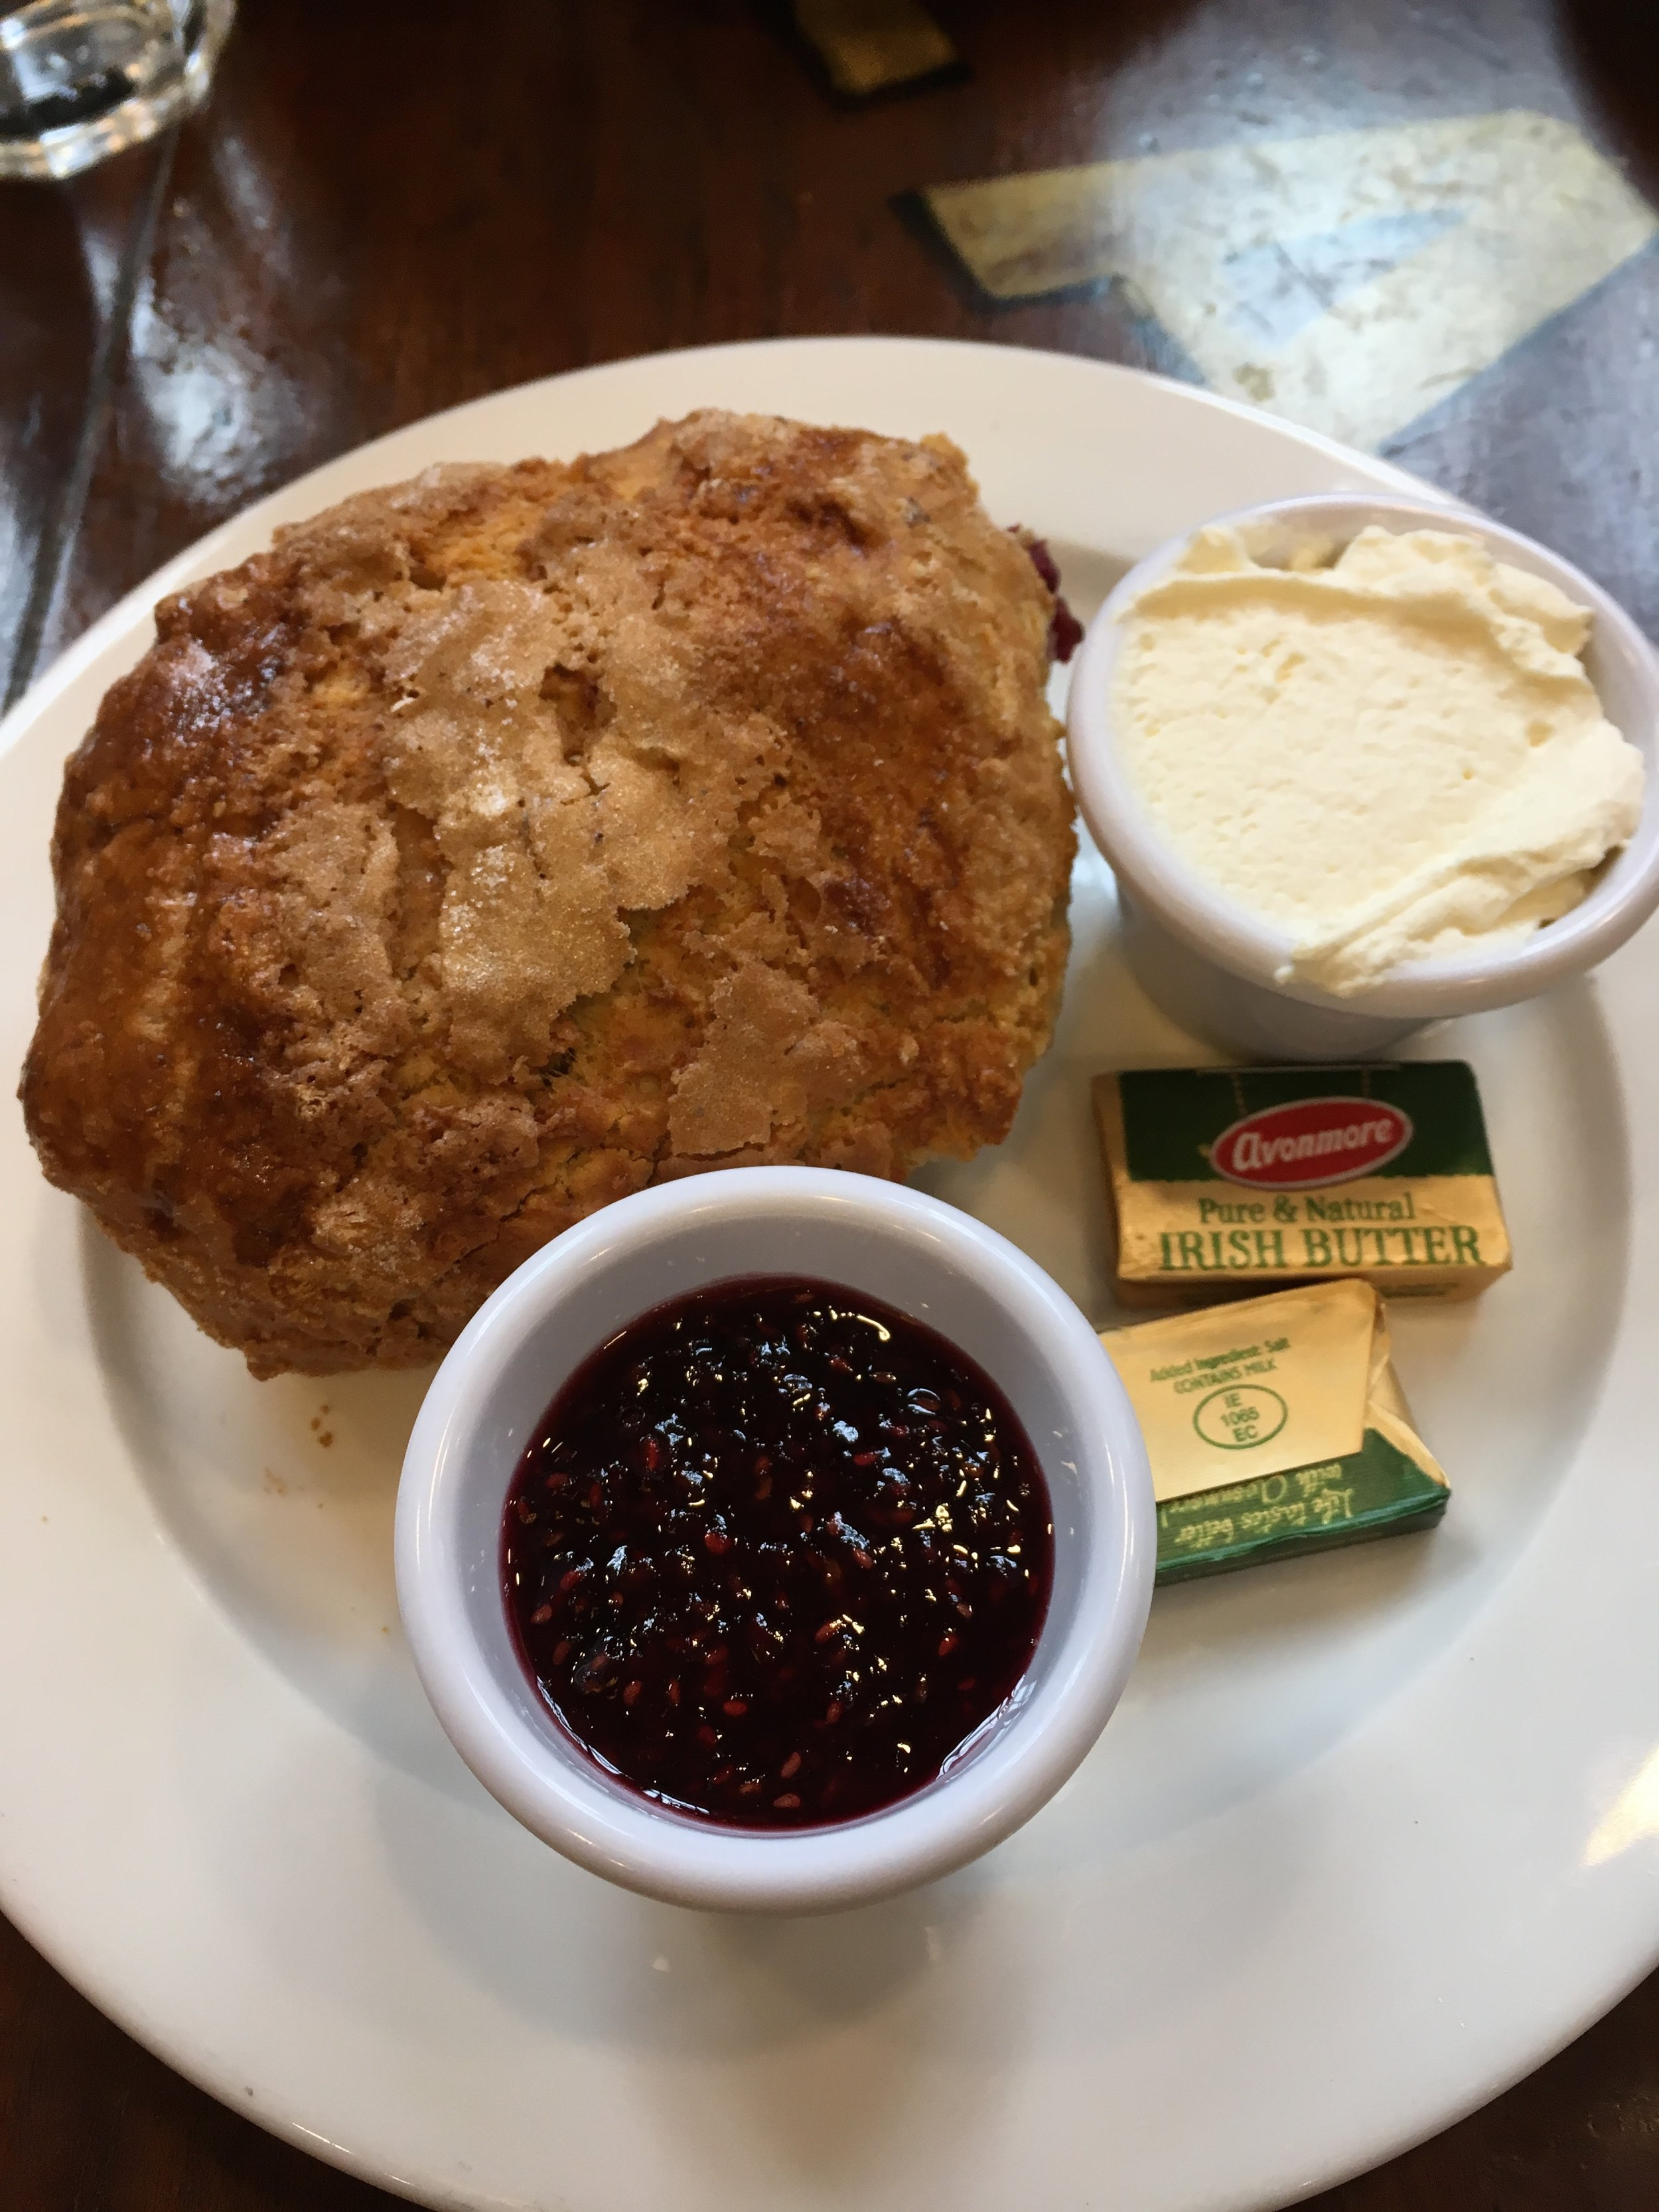 Mixed berry scone with homemade jam and clotted cream